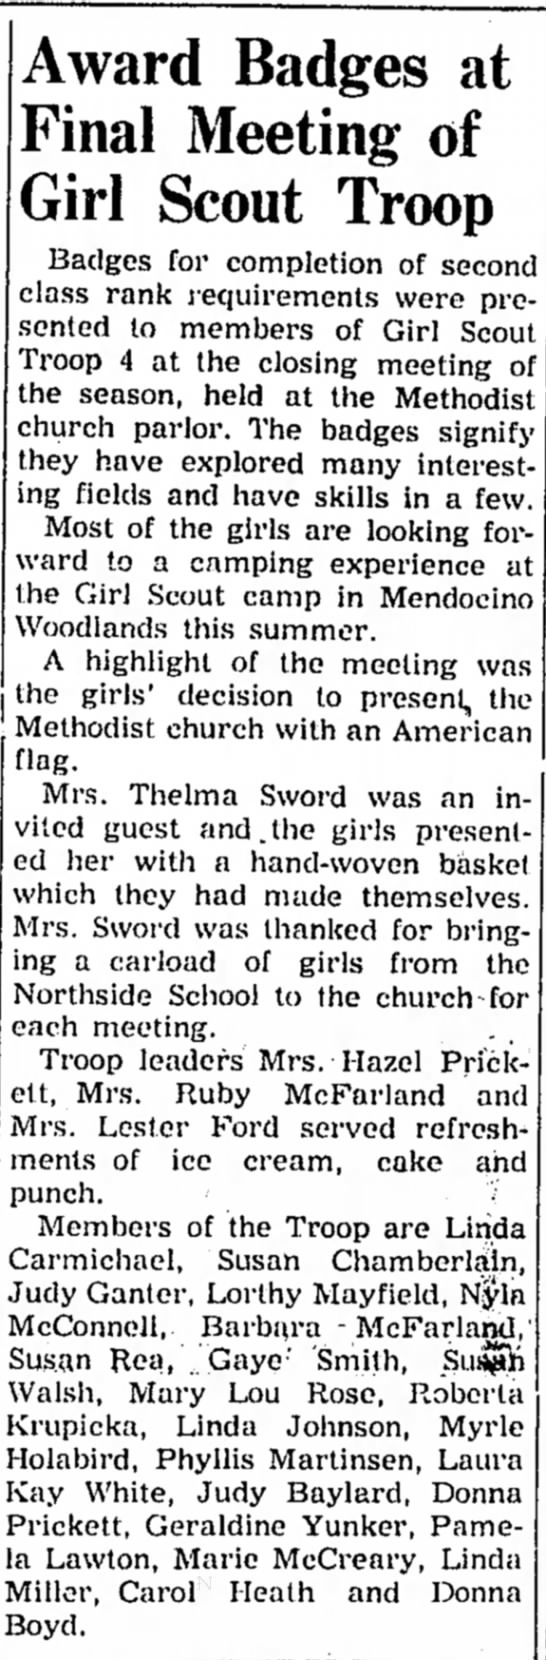 Girl Scouts - Myrle Holabird